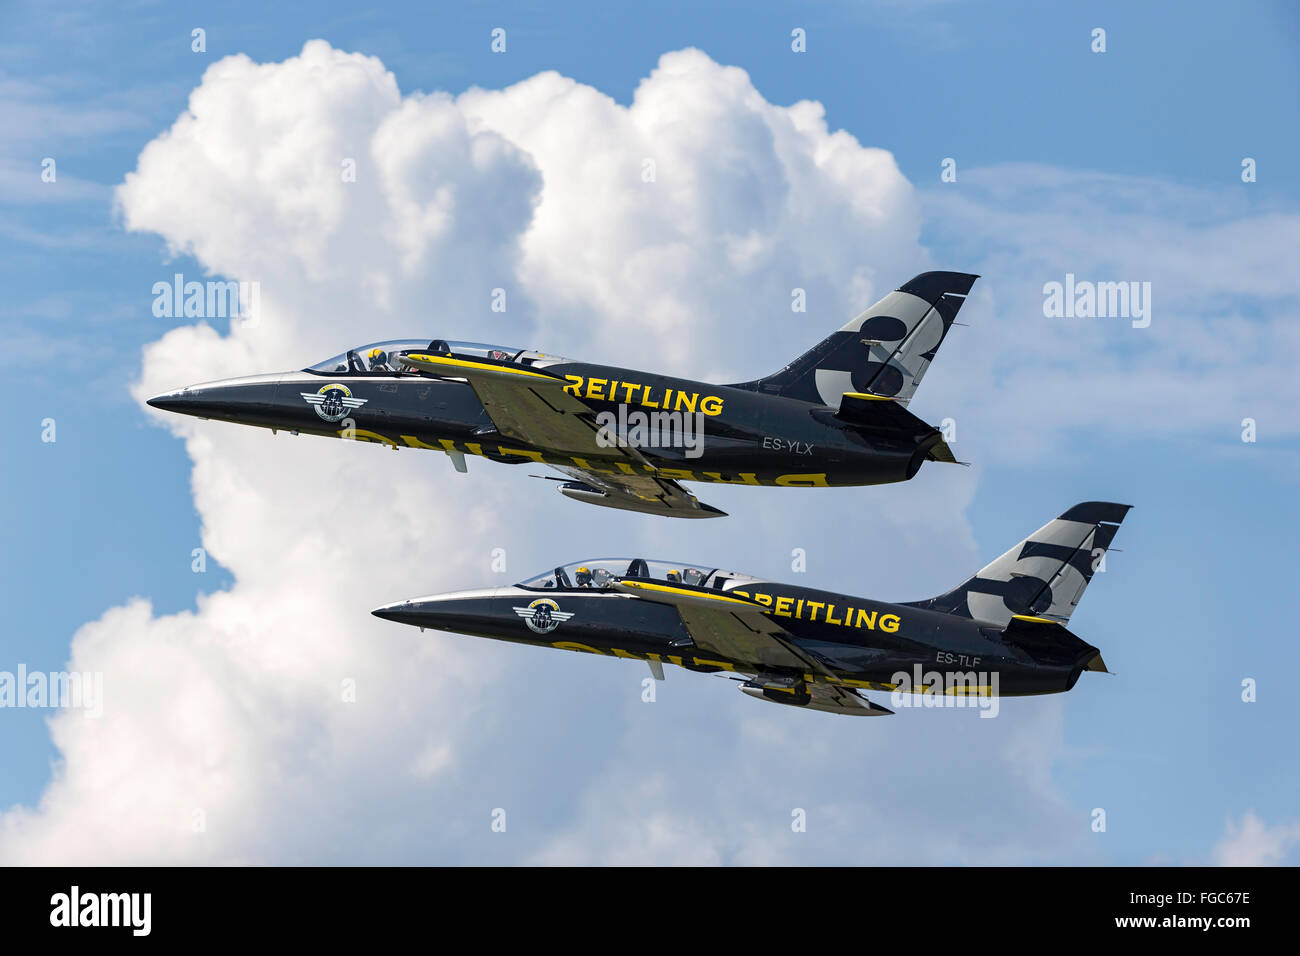 Aero L-39 Albatross trainer aircraft of the Breitling Jet Team - Stock Image